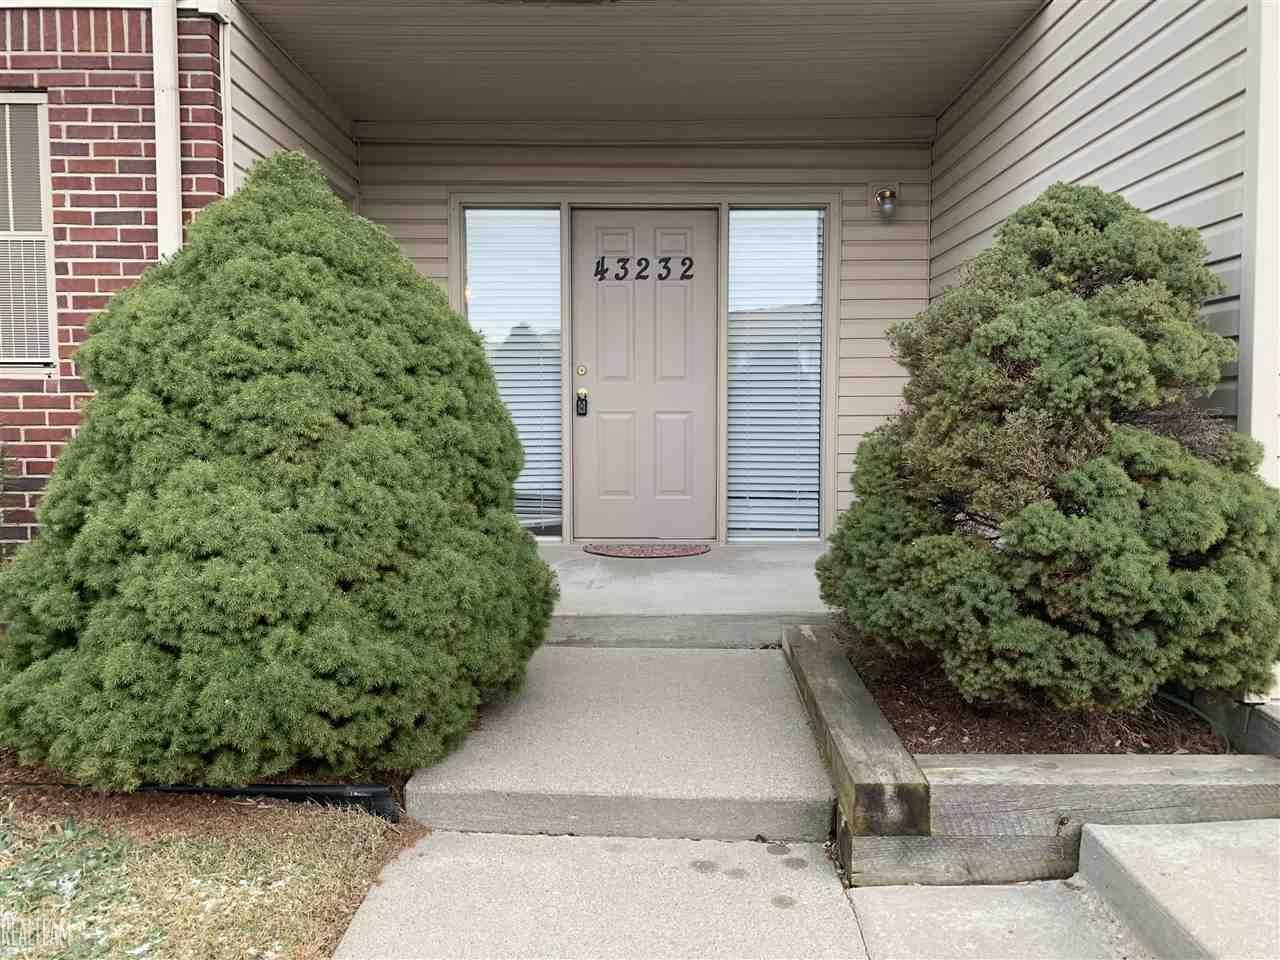 Photo of 43232 Fountain, Sterling Heights, MI 48313 (MLS # 50001867)